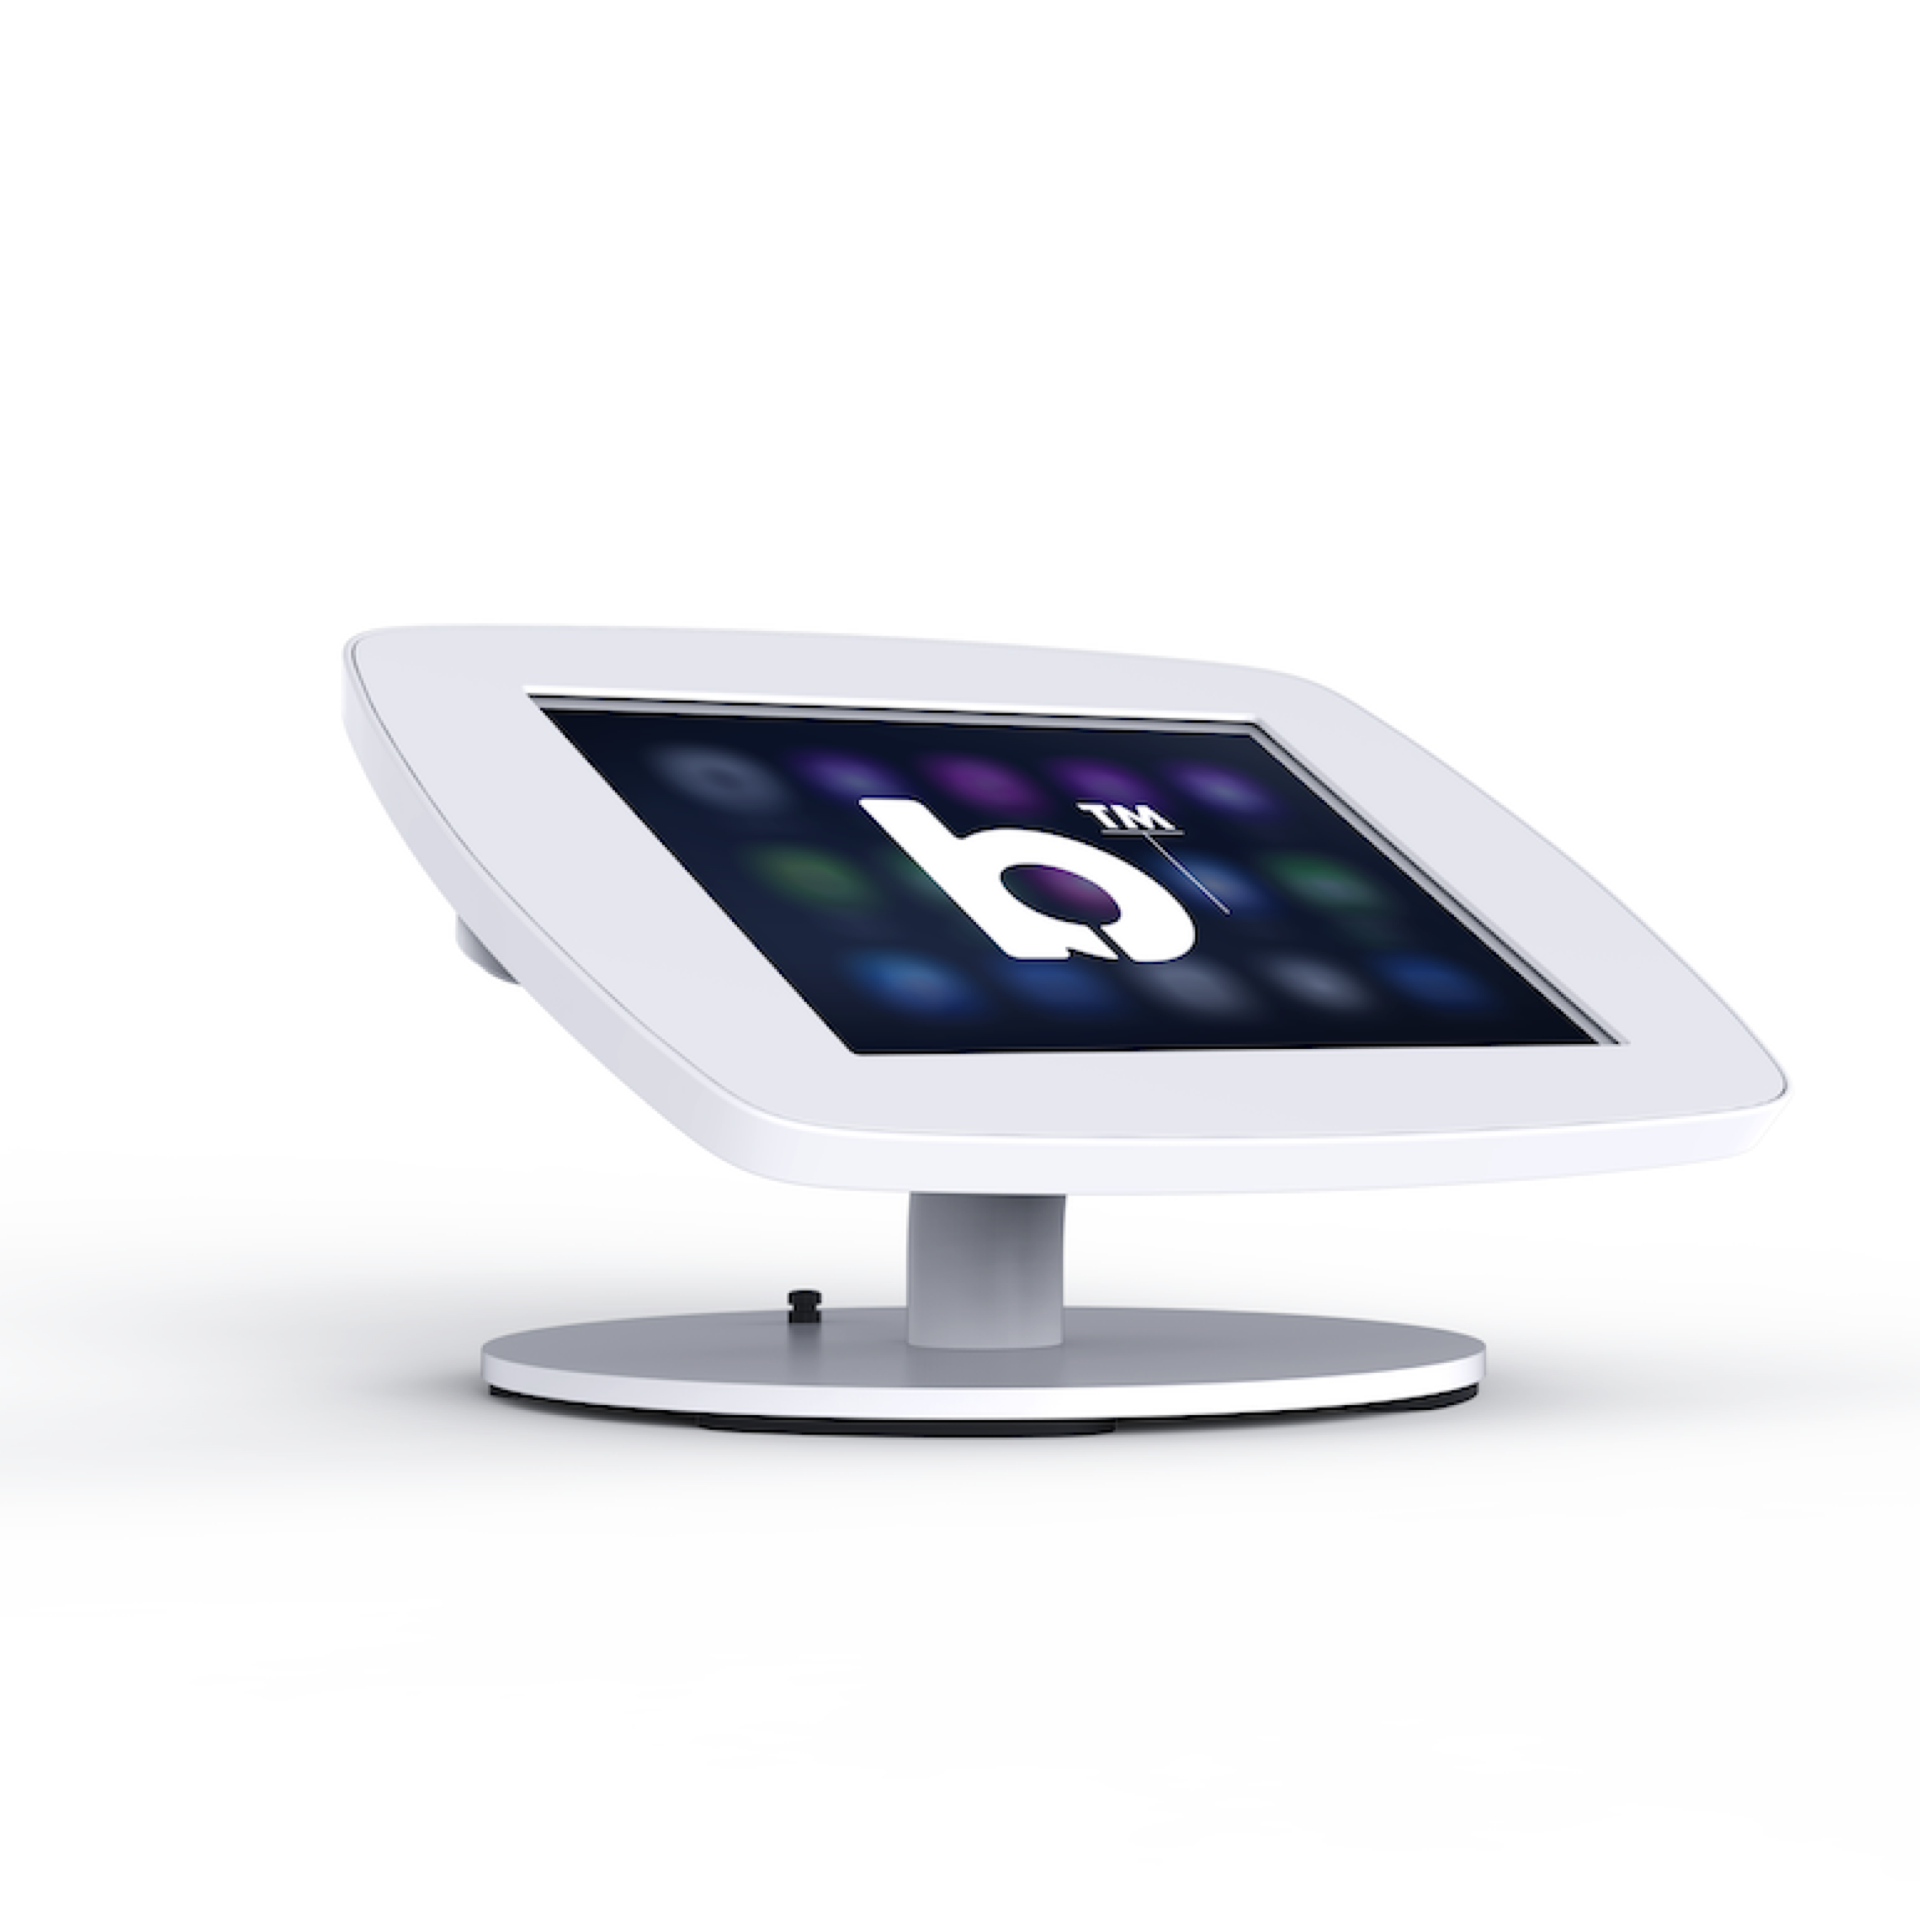 Bouncepad COUNTER tablet stand